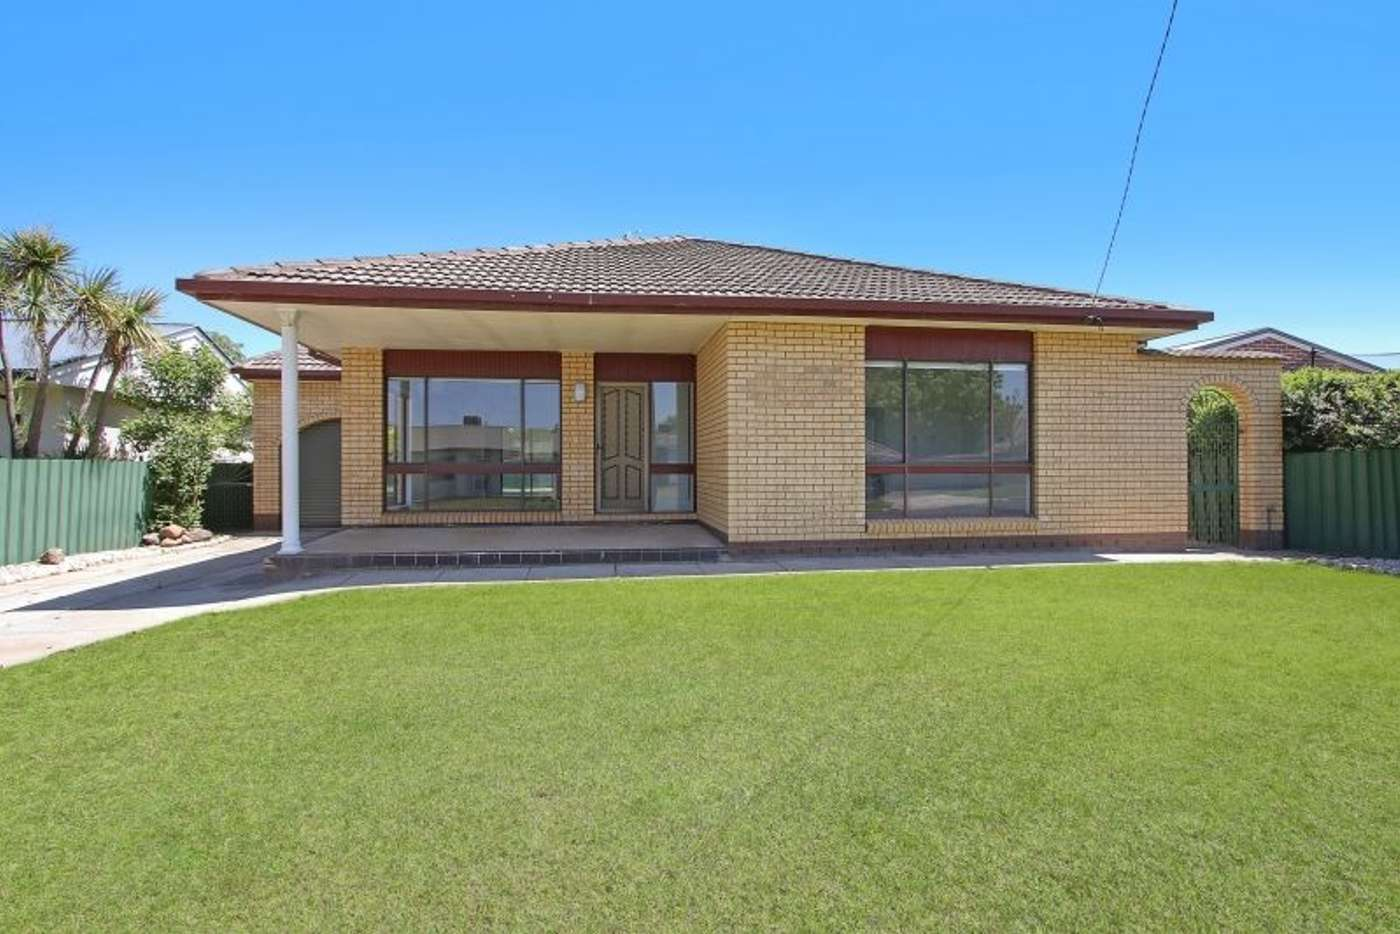 Main view of Homely house listing, 401 Eden Street, Lavington NSW 2641